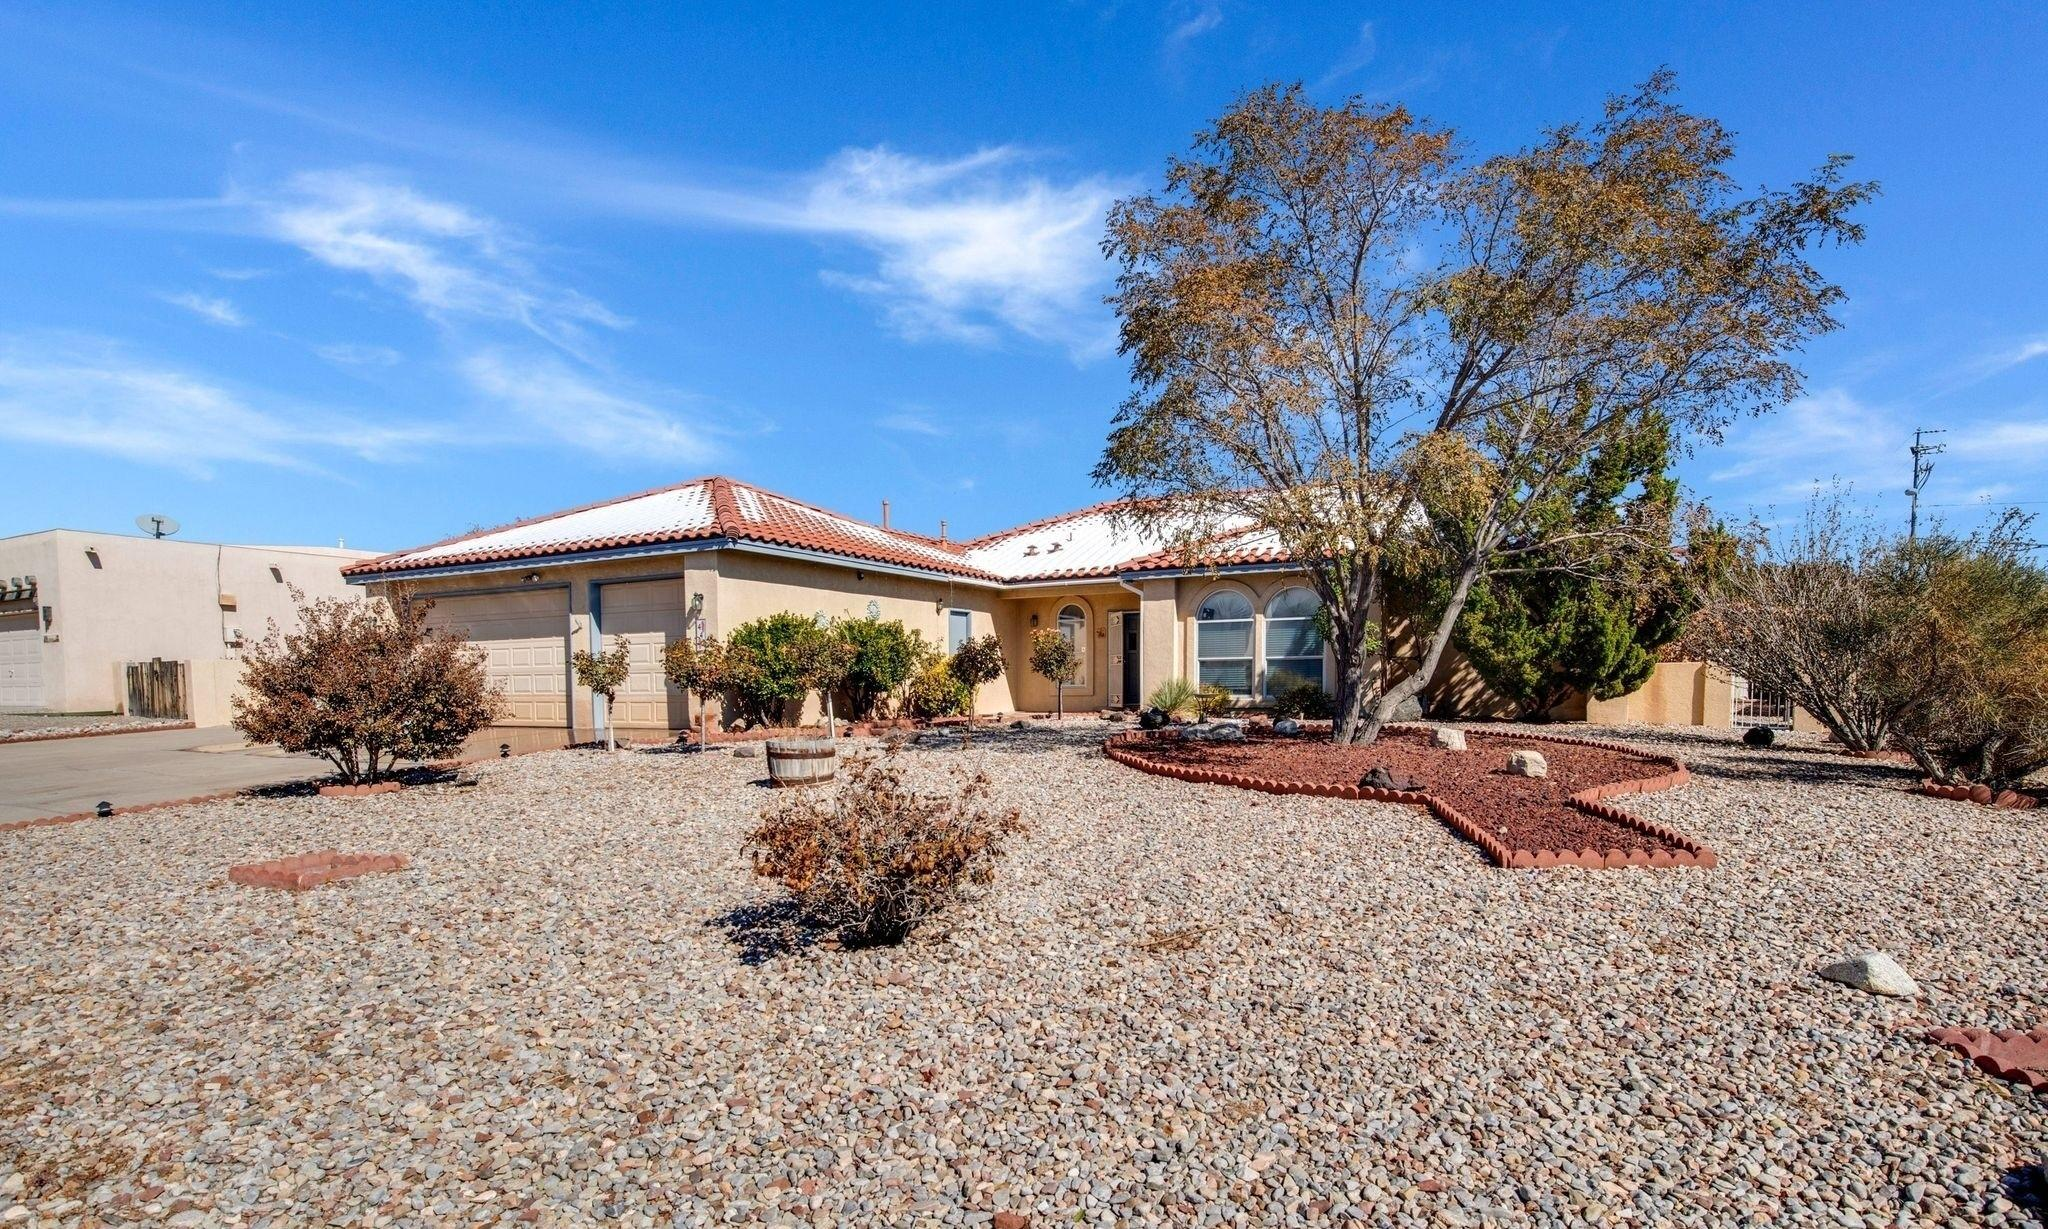 This single-owner home has been lovingly cared for and is ready for you to move in.  The light and bright home boasts a HUGE OPEN KITCHEN with island, breakfast nook and breakfast bar that is open to the second living area. The home's extra large bedrooms are a welcome sight! The 1/3 acre corner lot and backyard is a gardener's paradise with drip systems, multiple fruit trees, grapevines, vegetable garden and shed.  The large covered patio, water feature, and gas grill hookup is perfect for entertaining.  The OVERSIZED GARAGE is a hobbyist's dream, with workbenches, storage cabinets and attic space. The side yard access and 54 ft RV PAD has electricity and sewer hookup. This one won't last!